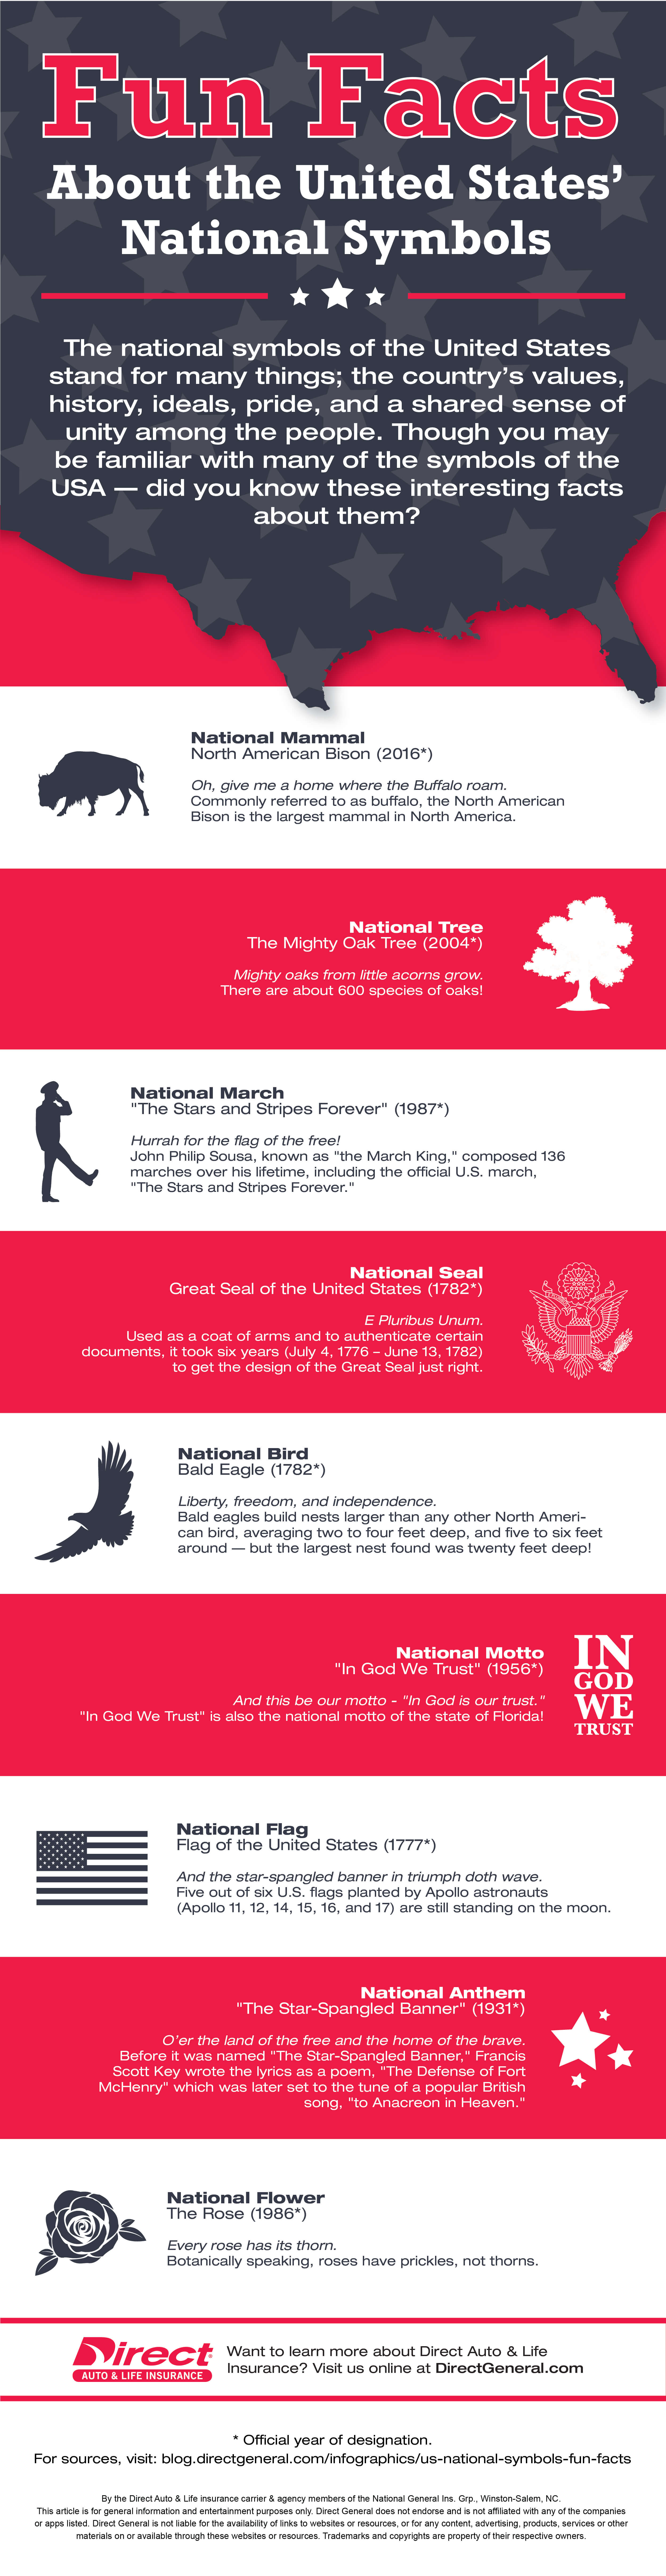 Infographic with fun facts and images about the United States' national symbols.